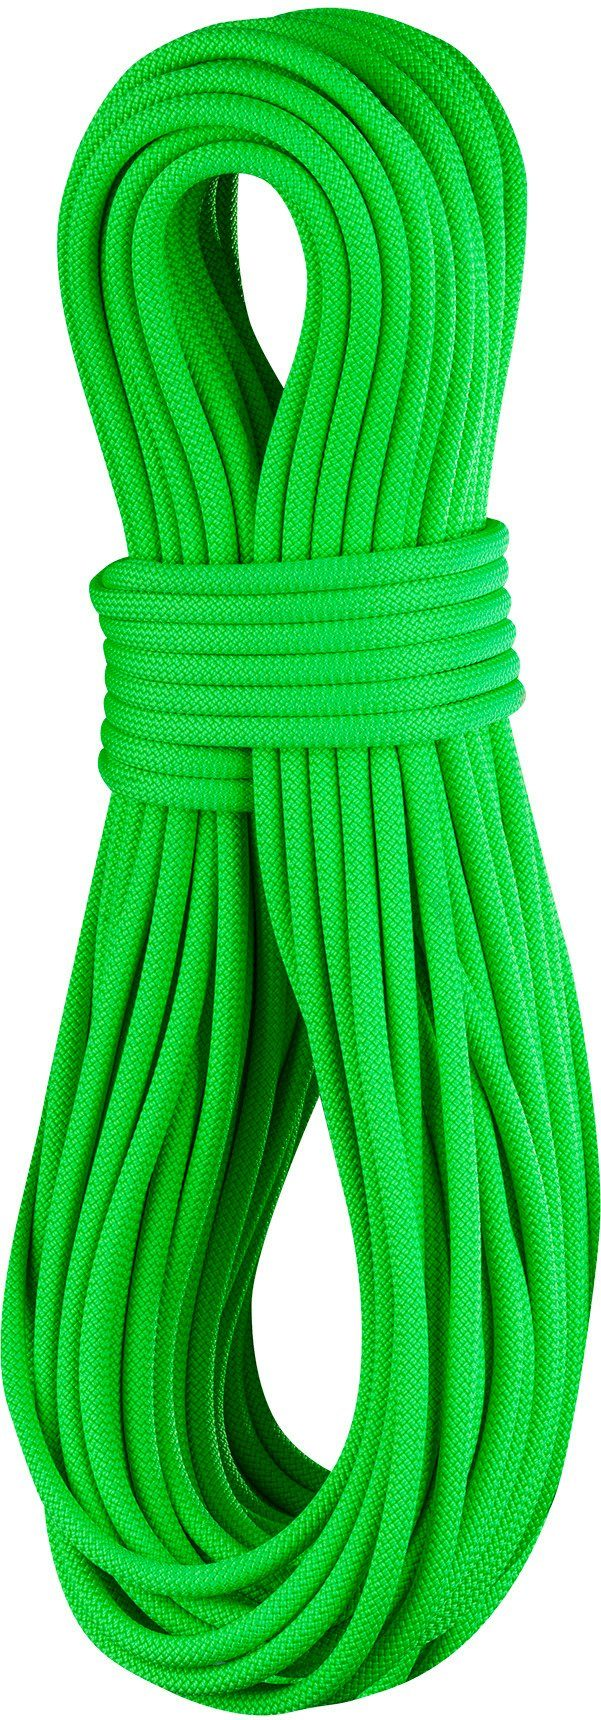 Edelrid Kletterseil »Canary Pro Dry Rope 8,6mm 60m«